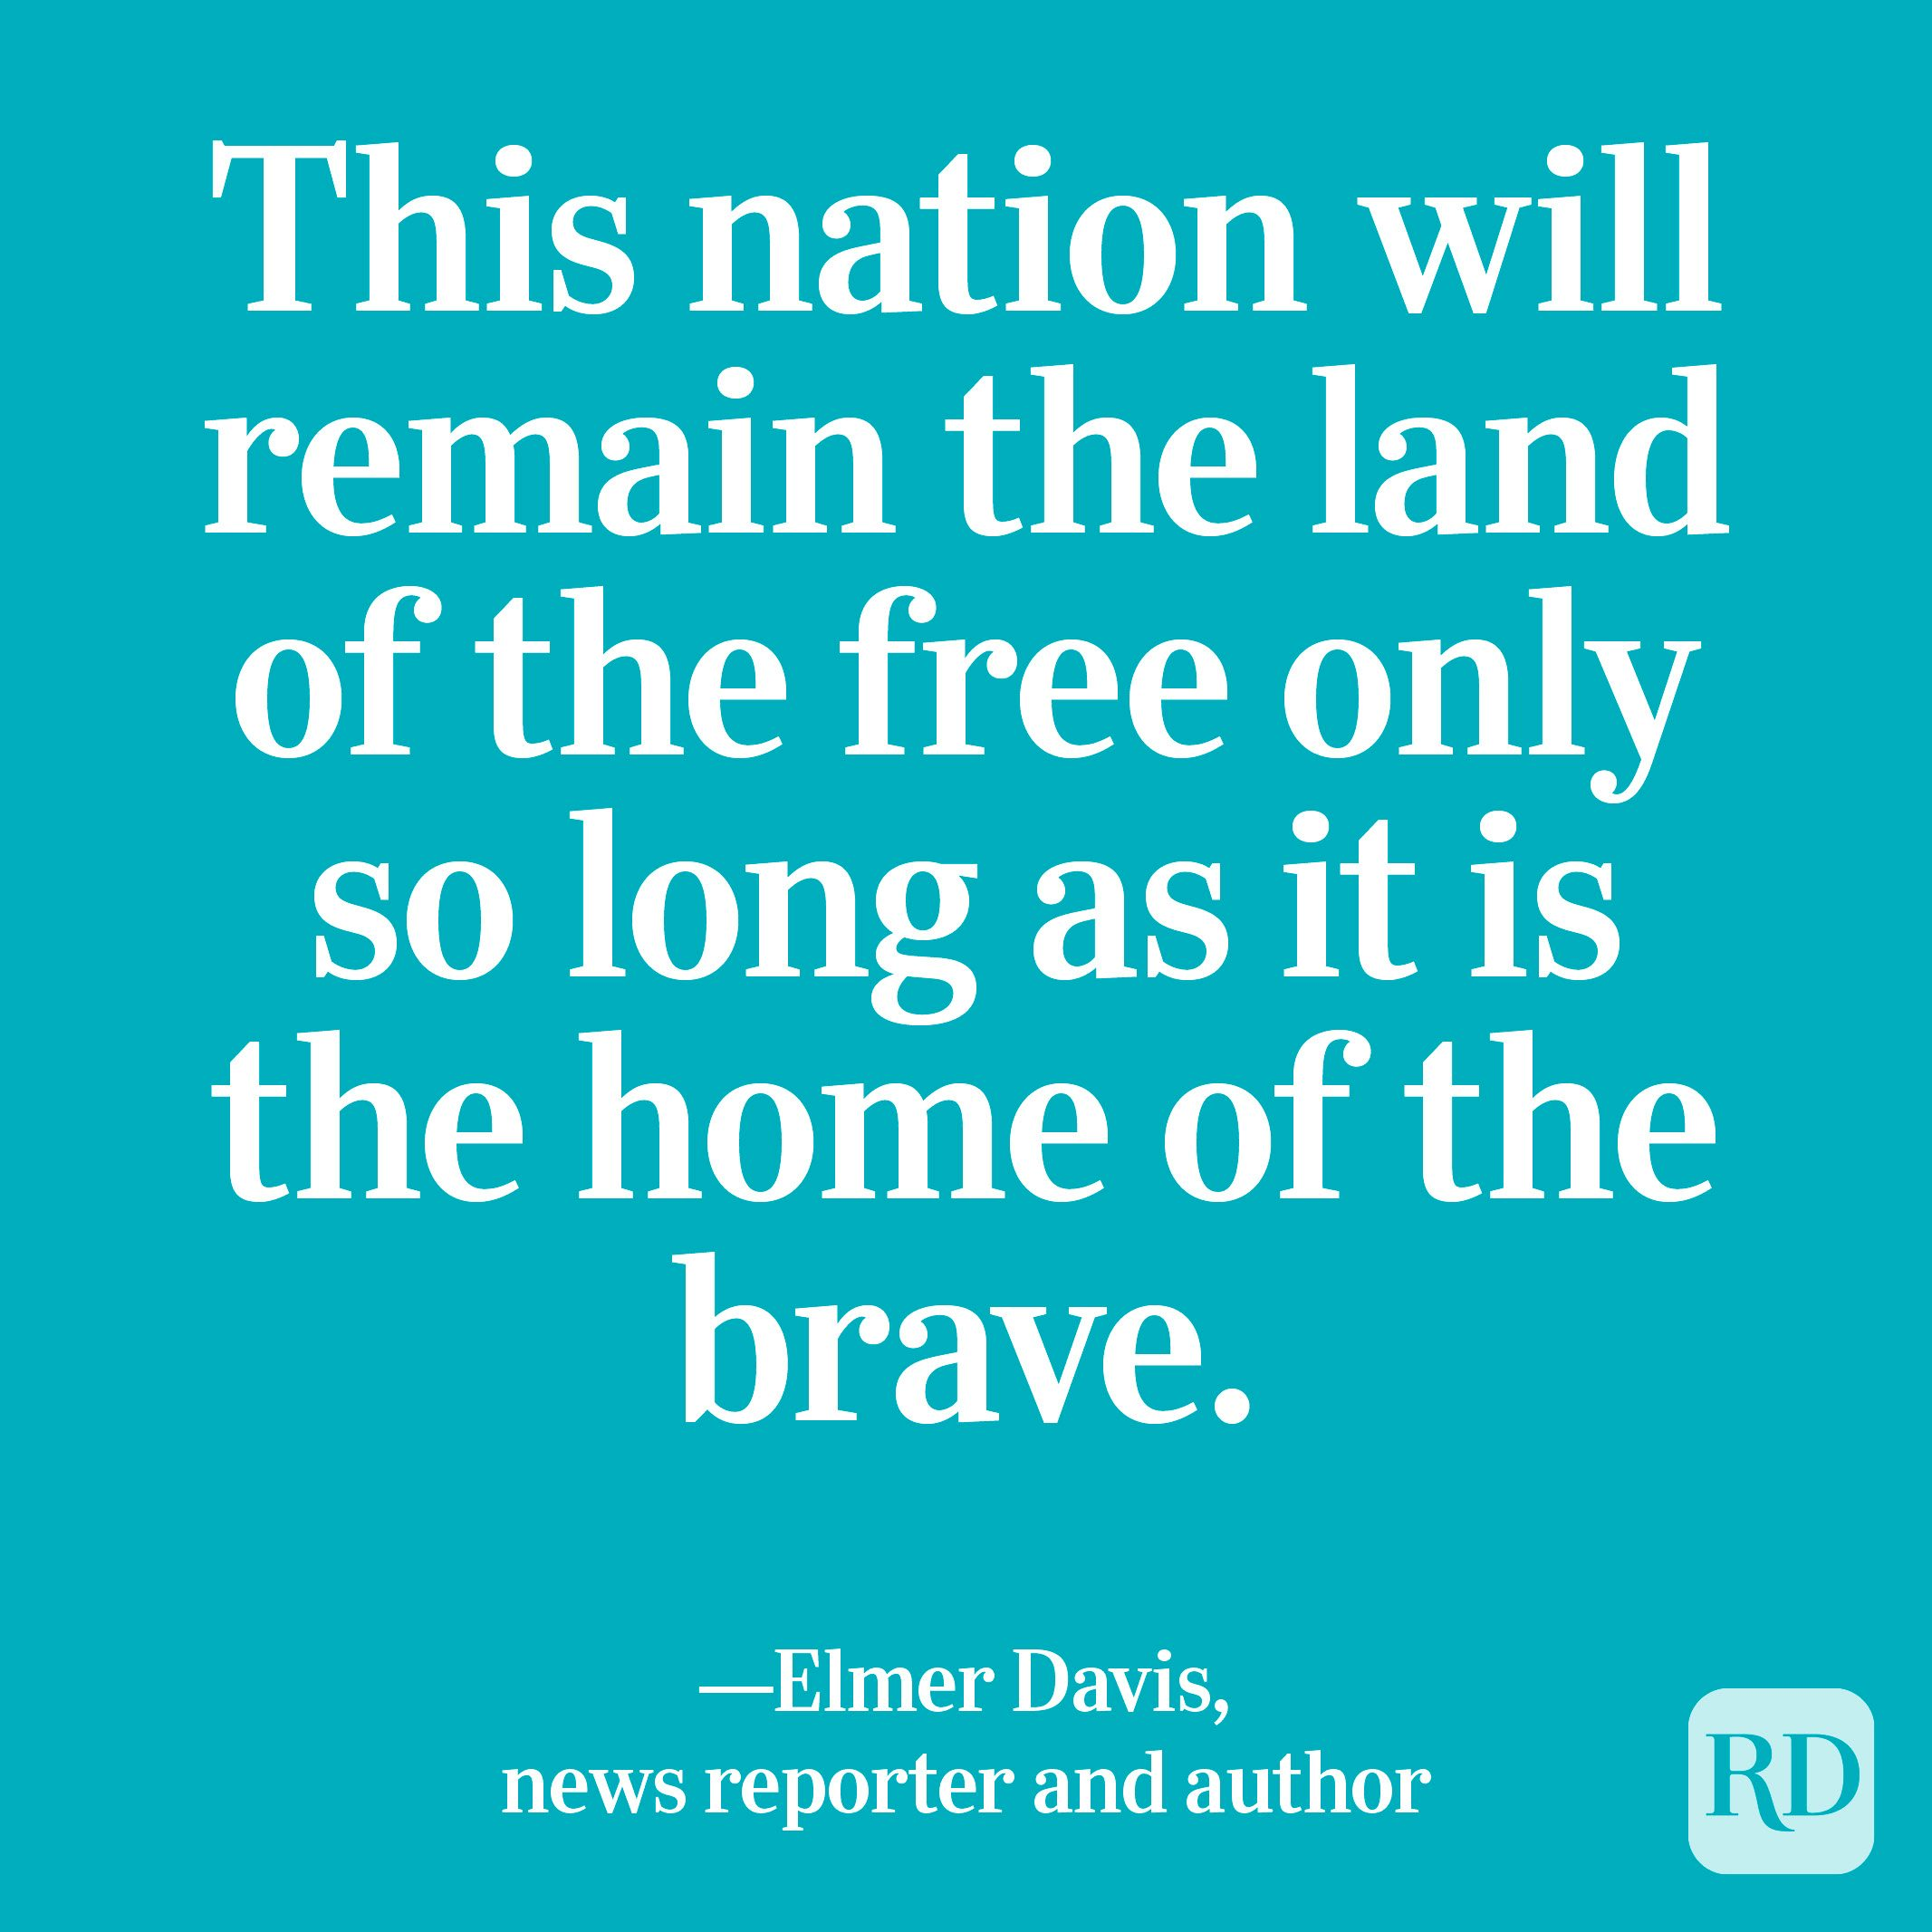 """""""This nation will remain the land of the free only so long as it is the home of the brave."""" —Elmer Davis, news reporter and author"""